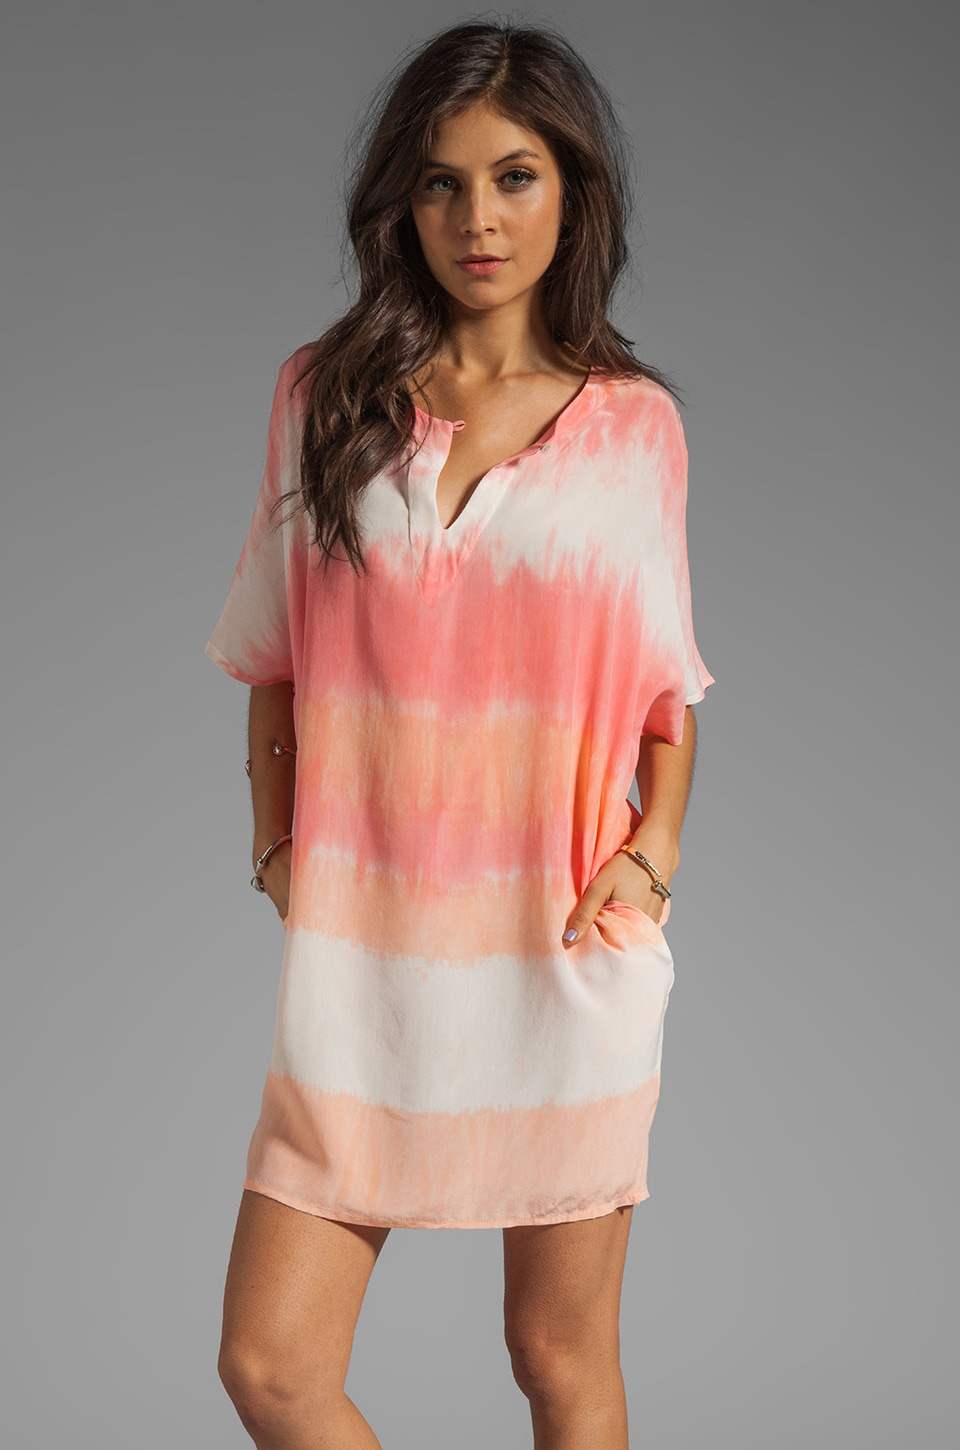 Gypsy 05 Hampton Silk Split Neck Dolman Sleeve Tunic Dress in Sherbet